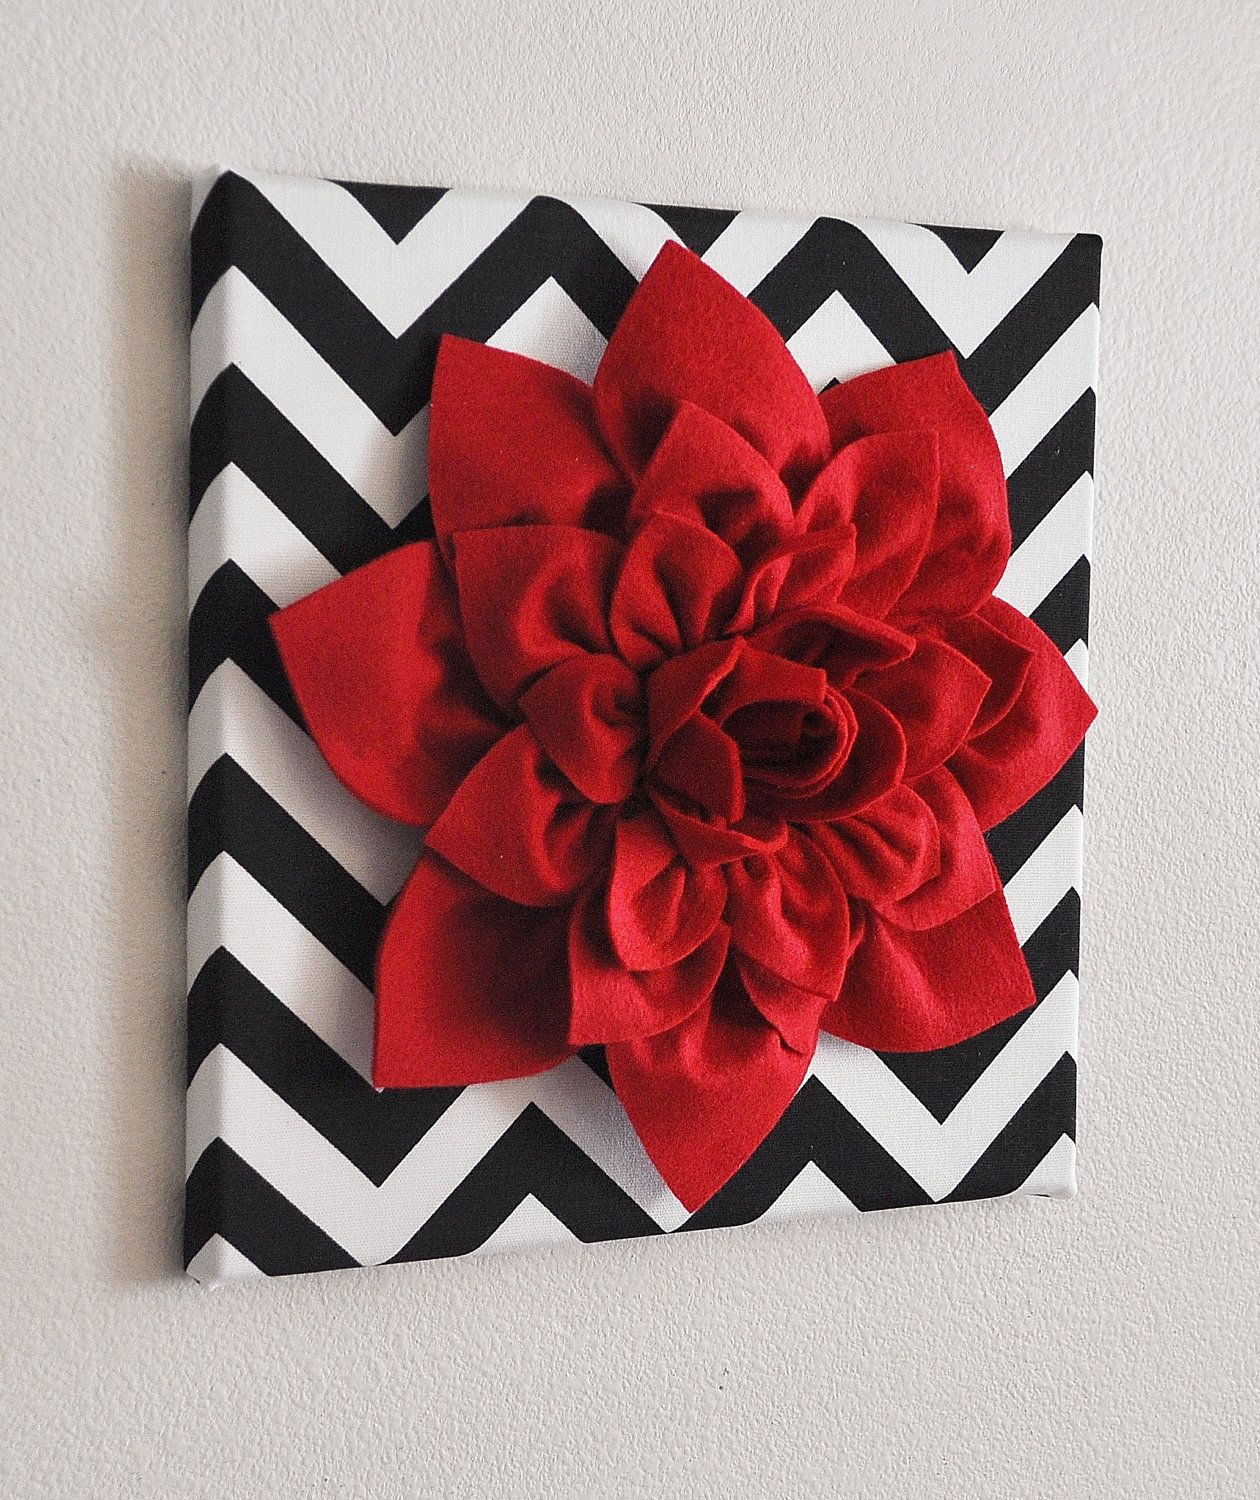 Wall Decor White Flowers : Red wall flower dahlia on black and white chevron